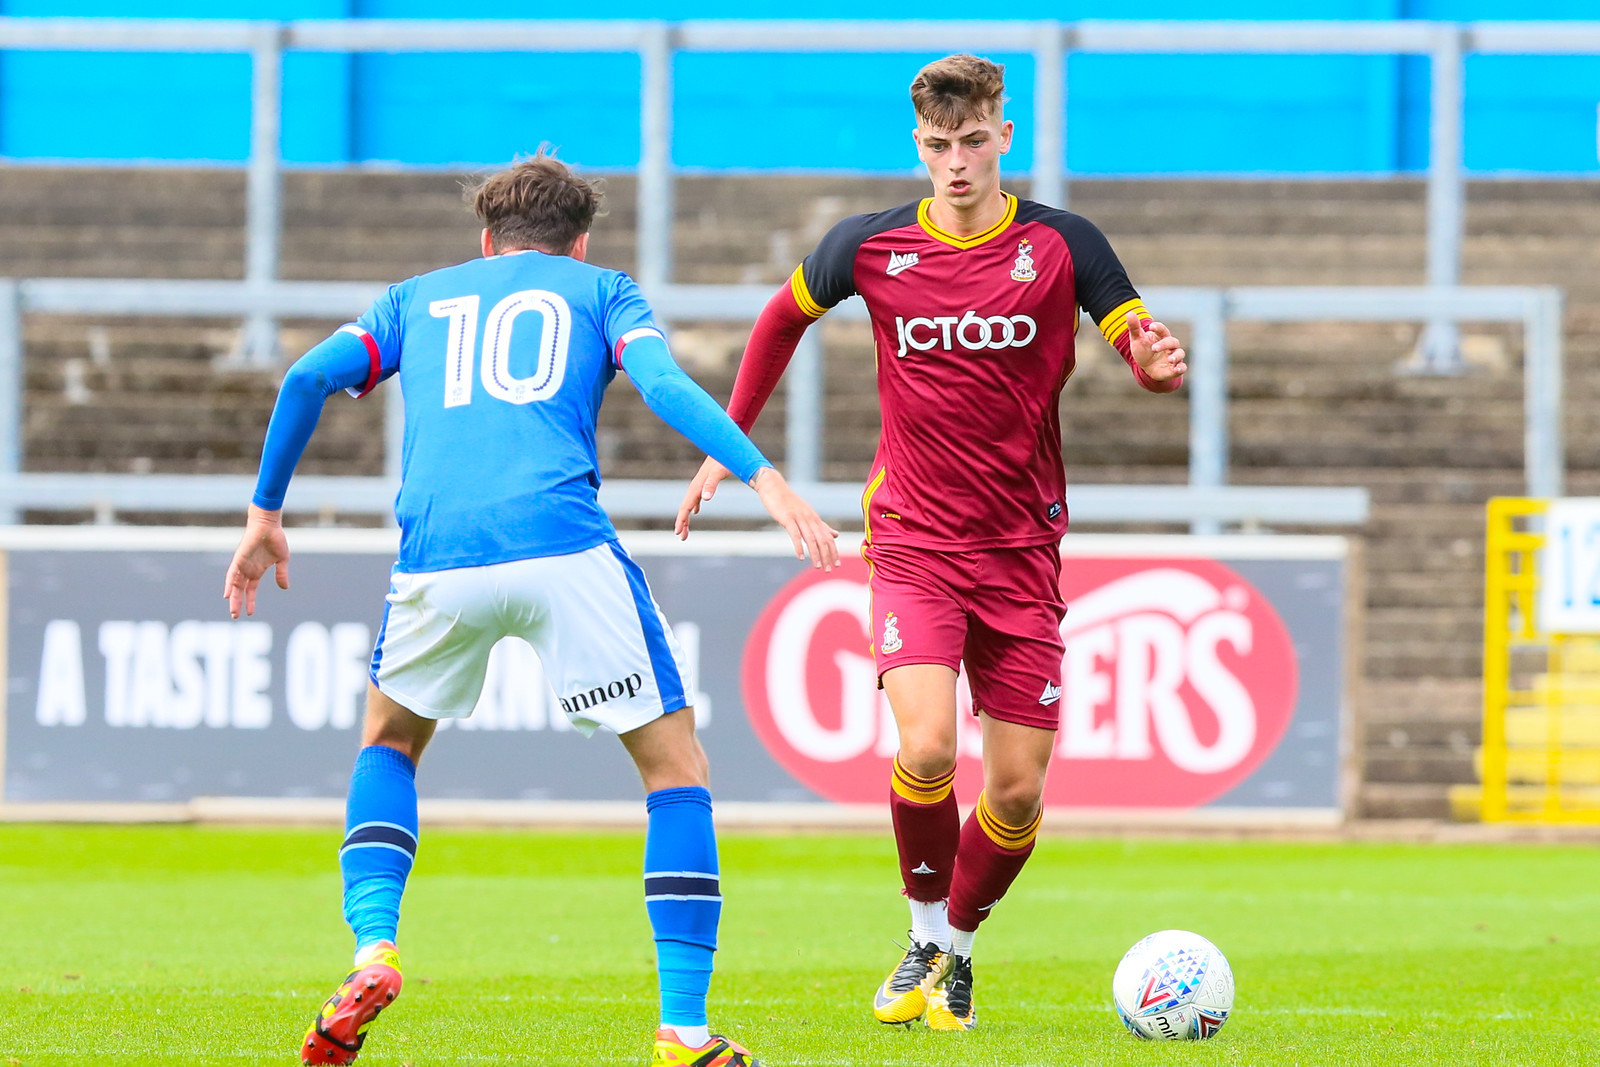 Luca Colville starred for City in pre-season, scoring a stunning goal against Bradford (Park Avenue) Picture: Thomas Gadd